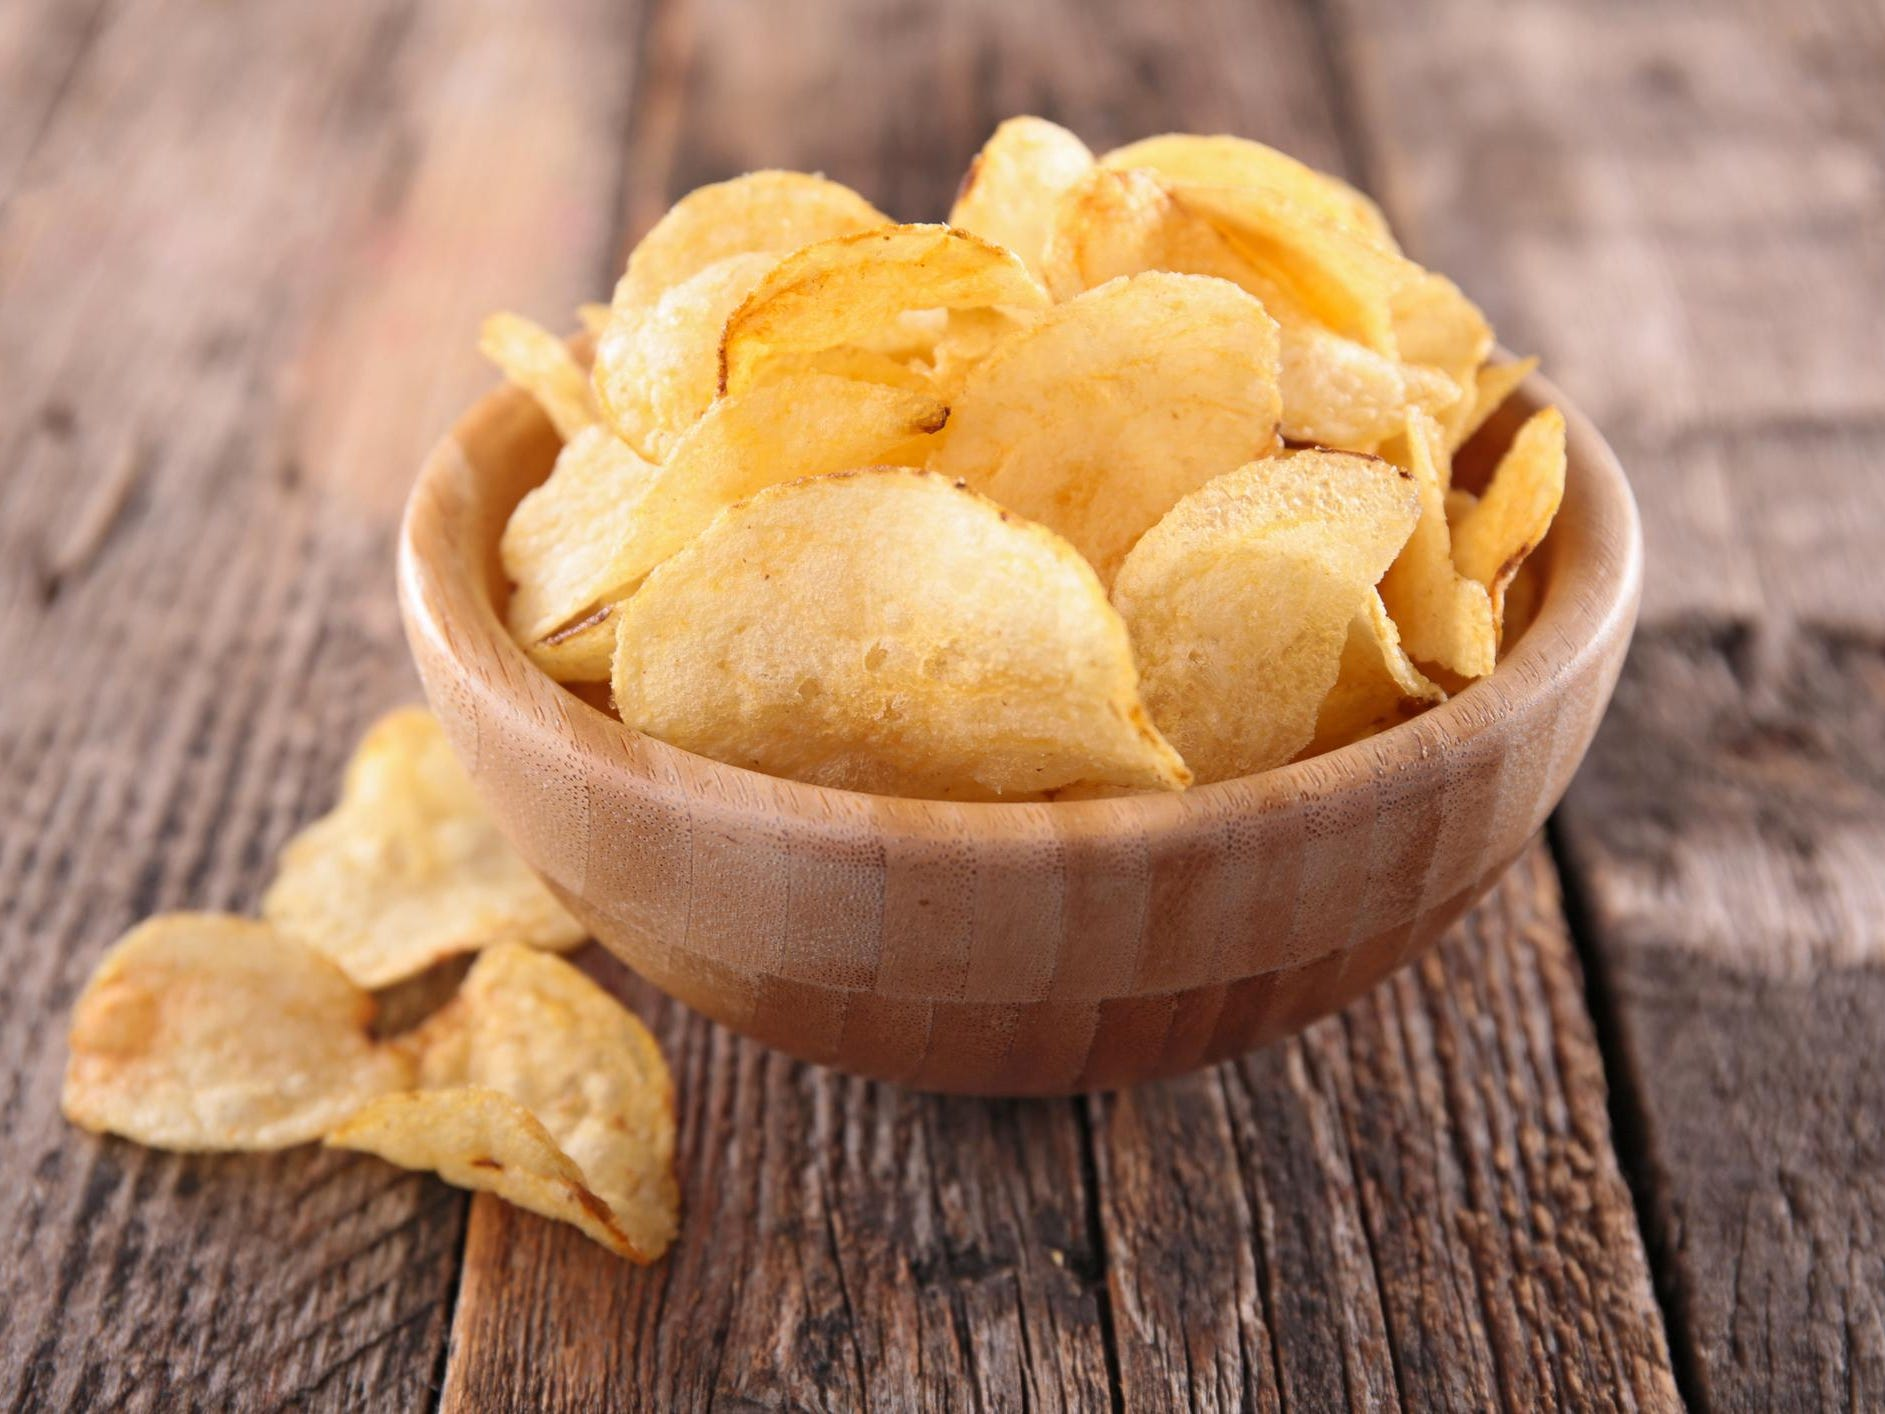 July 21 is National Junk Food Day. Take our quiz and see which kind of junk food you are.